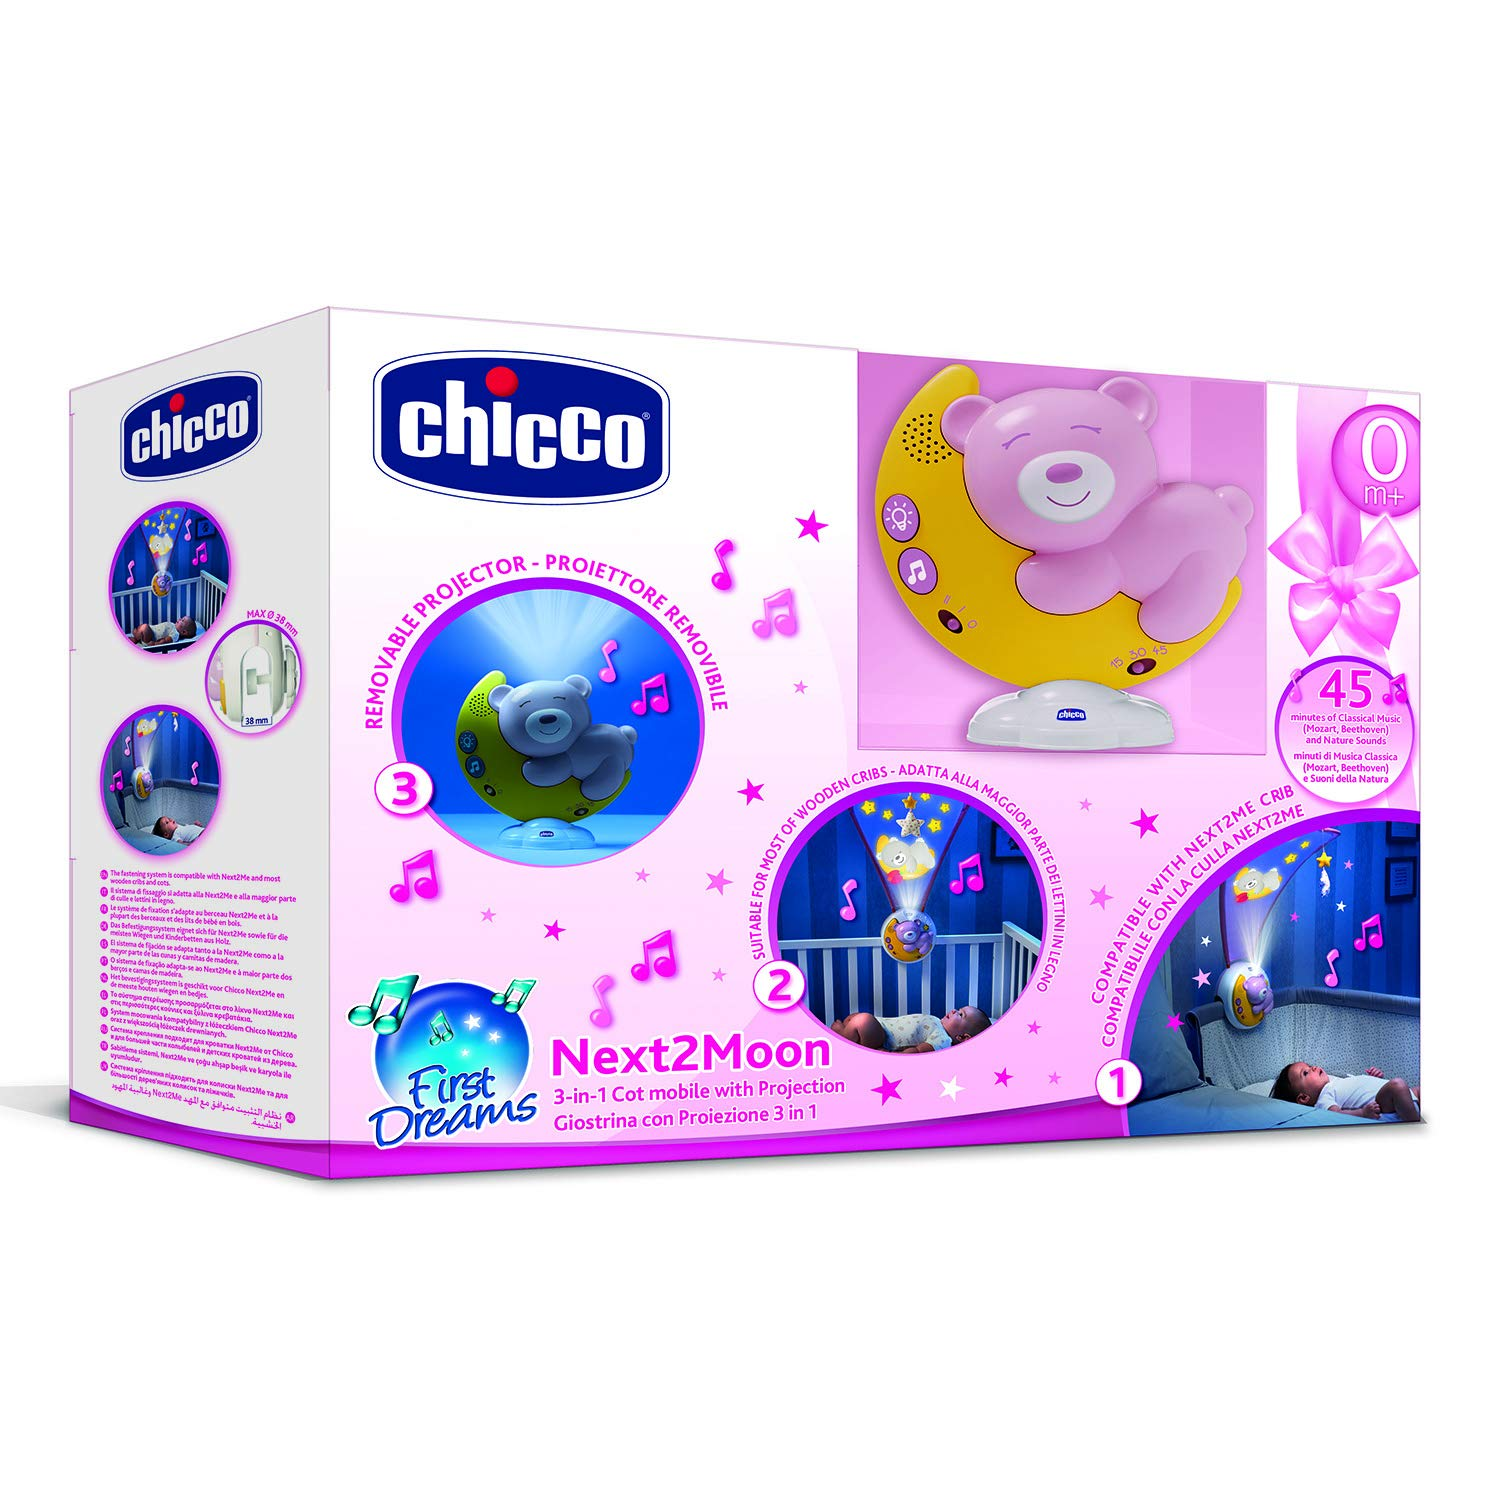 Chicco Next2moon - Proyector de cuna con luces y sonidos, móvil, panel y carrusel desmontable, color rosa